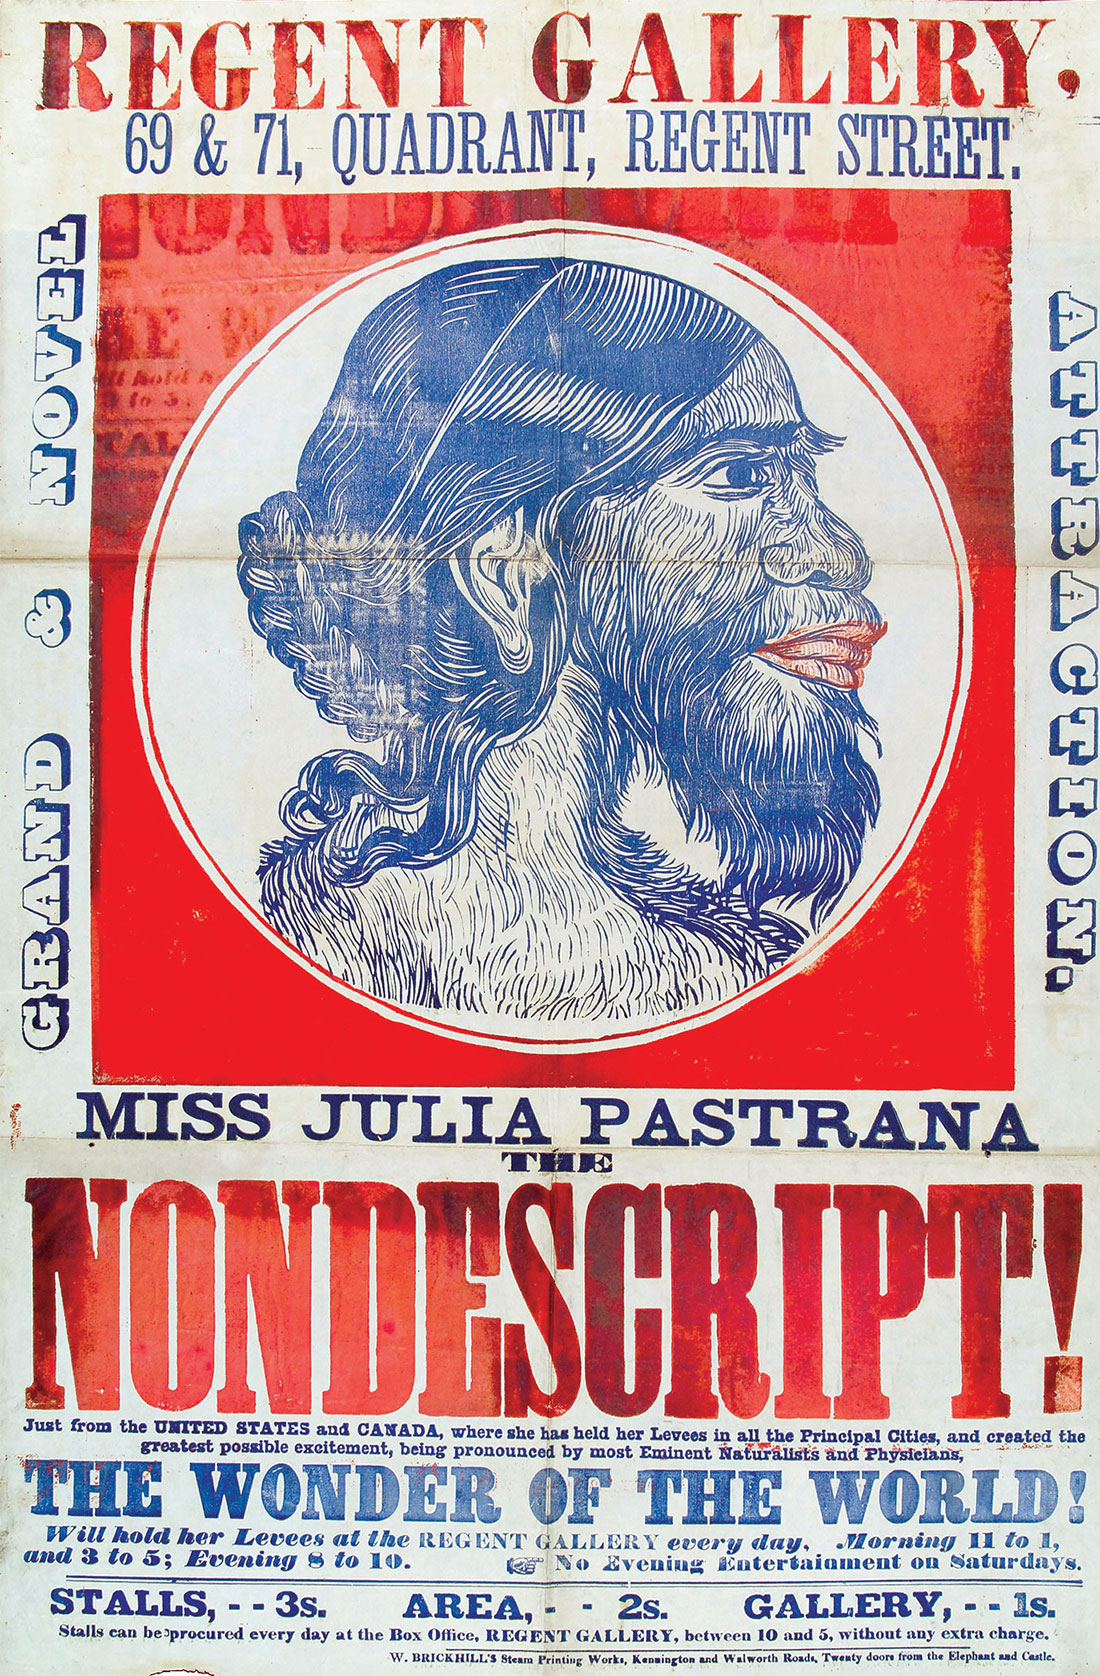 Miss Julia Pastrana, advertisement, 19th century.